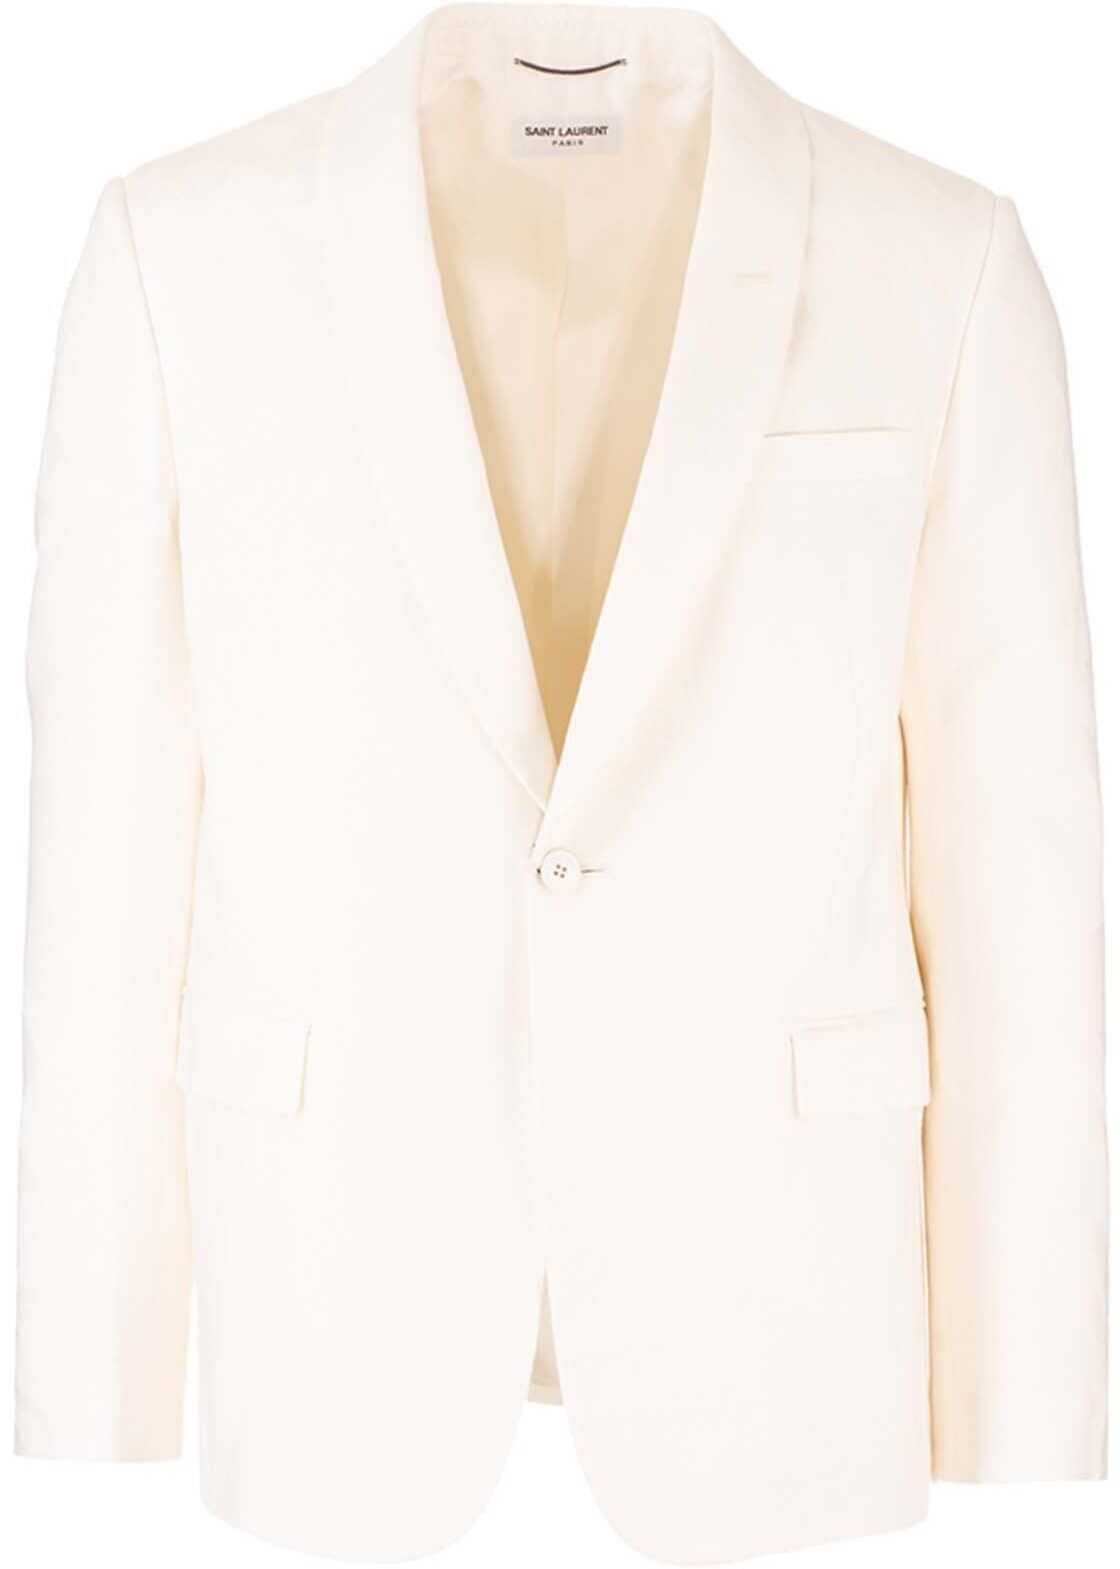 Saint Laurent One Button Jacket In Ivory Color White imagine